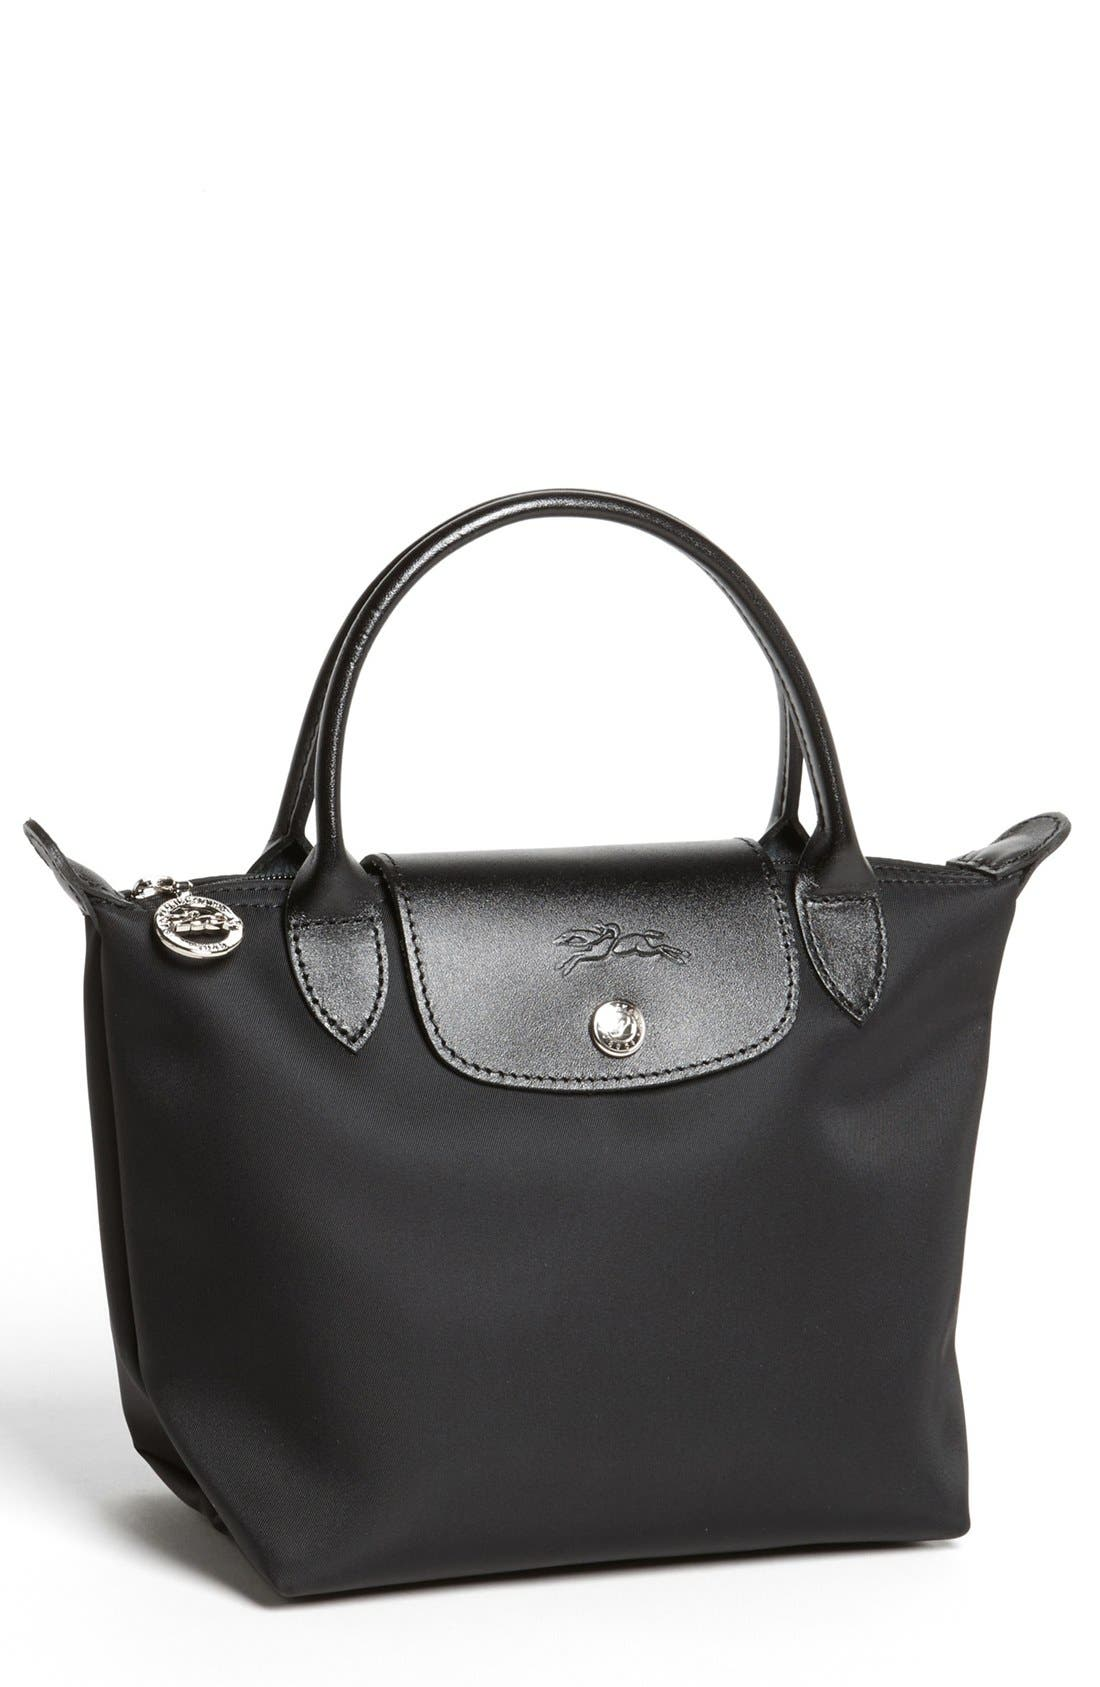 Main Image - Longchamp 'Deposé - Mini' Bag